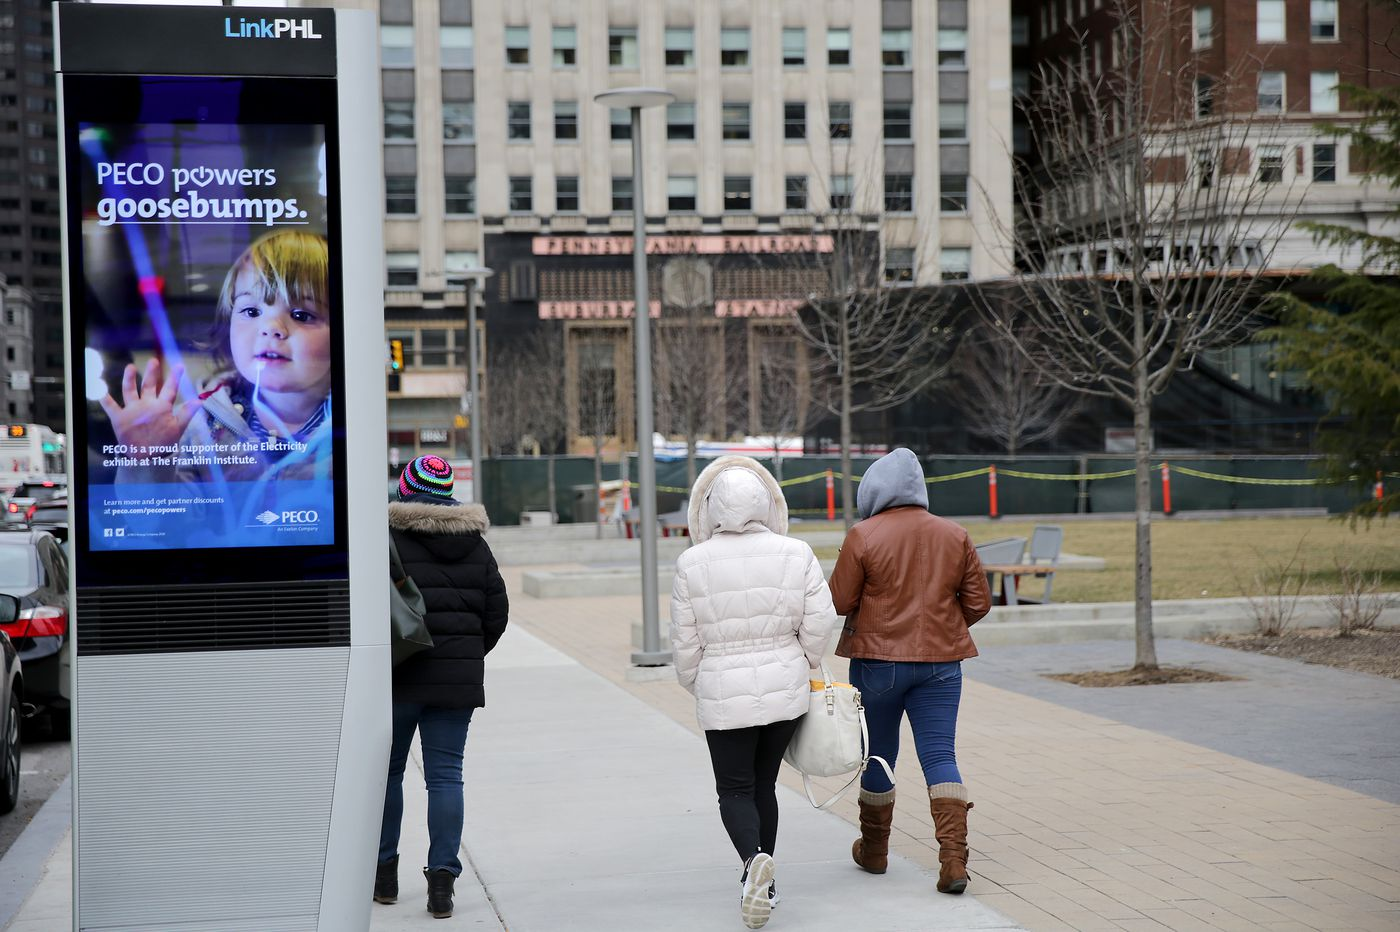 PennDot calls out Mayor Kenney, Council on digital kiosks over ad screens that could cost city millions